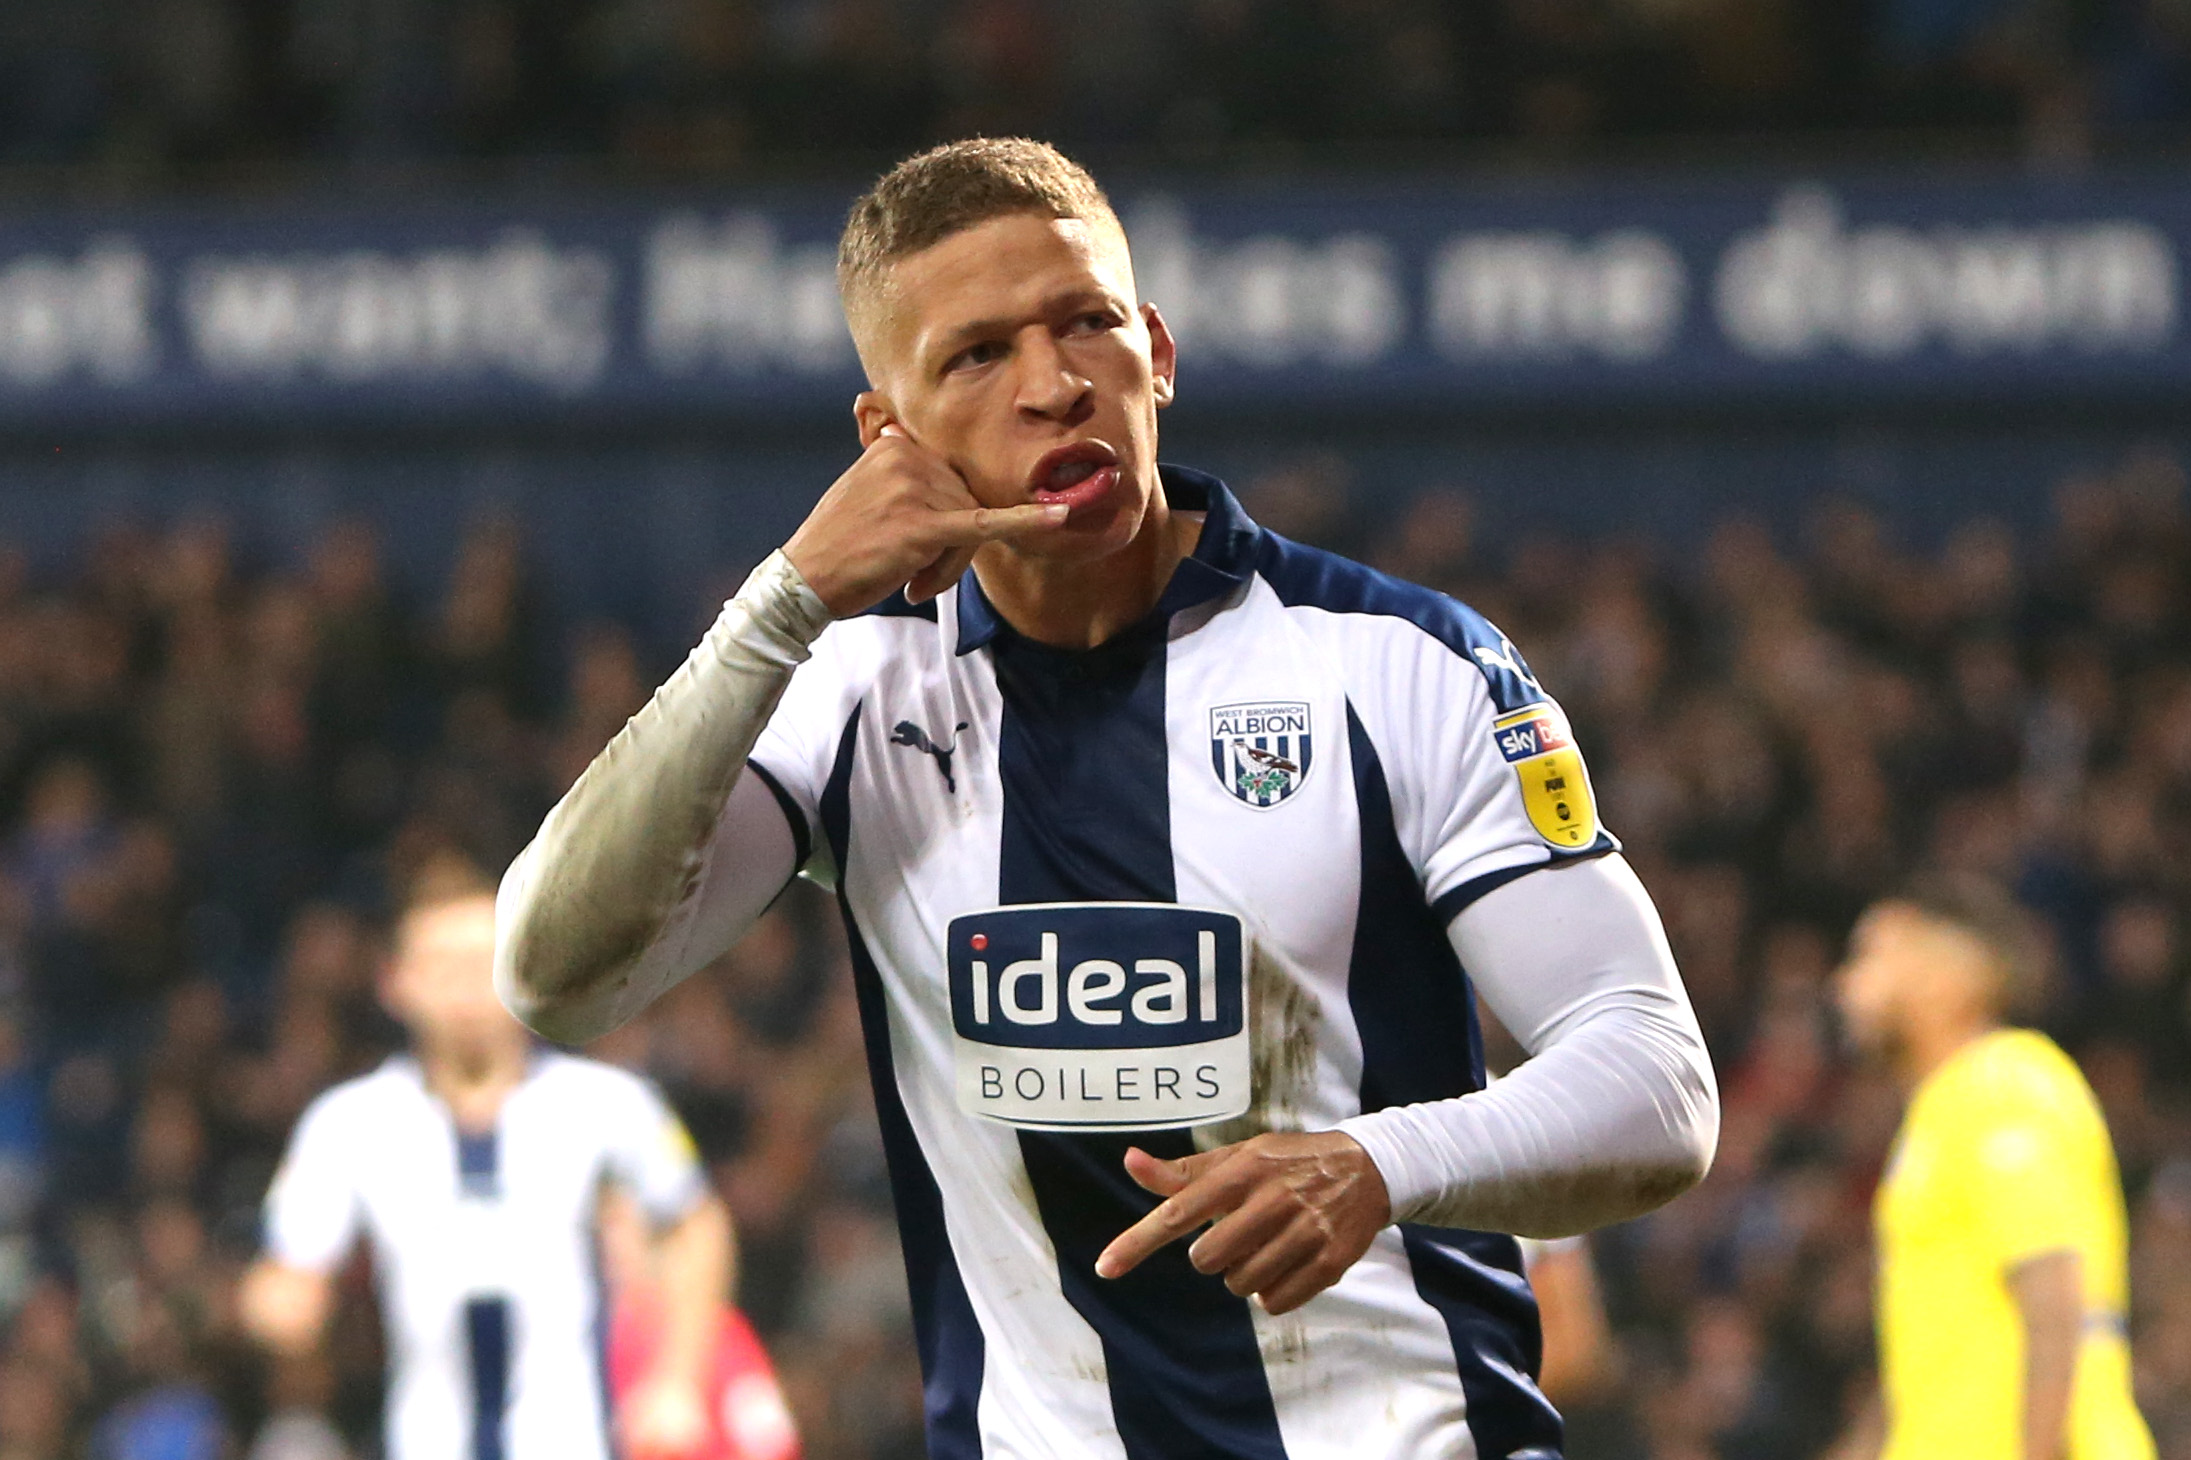 Scouting Report: West Bromwich Albion